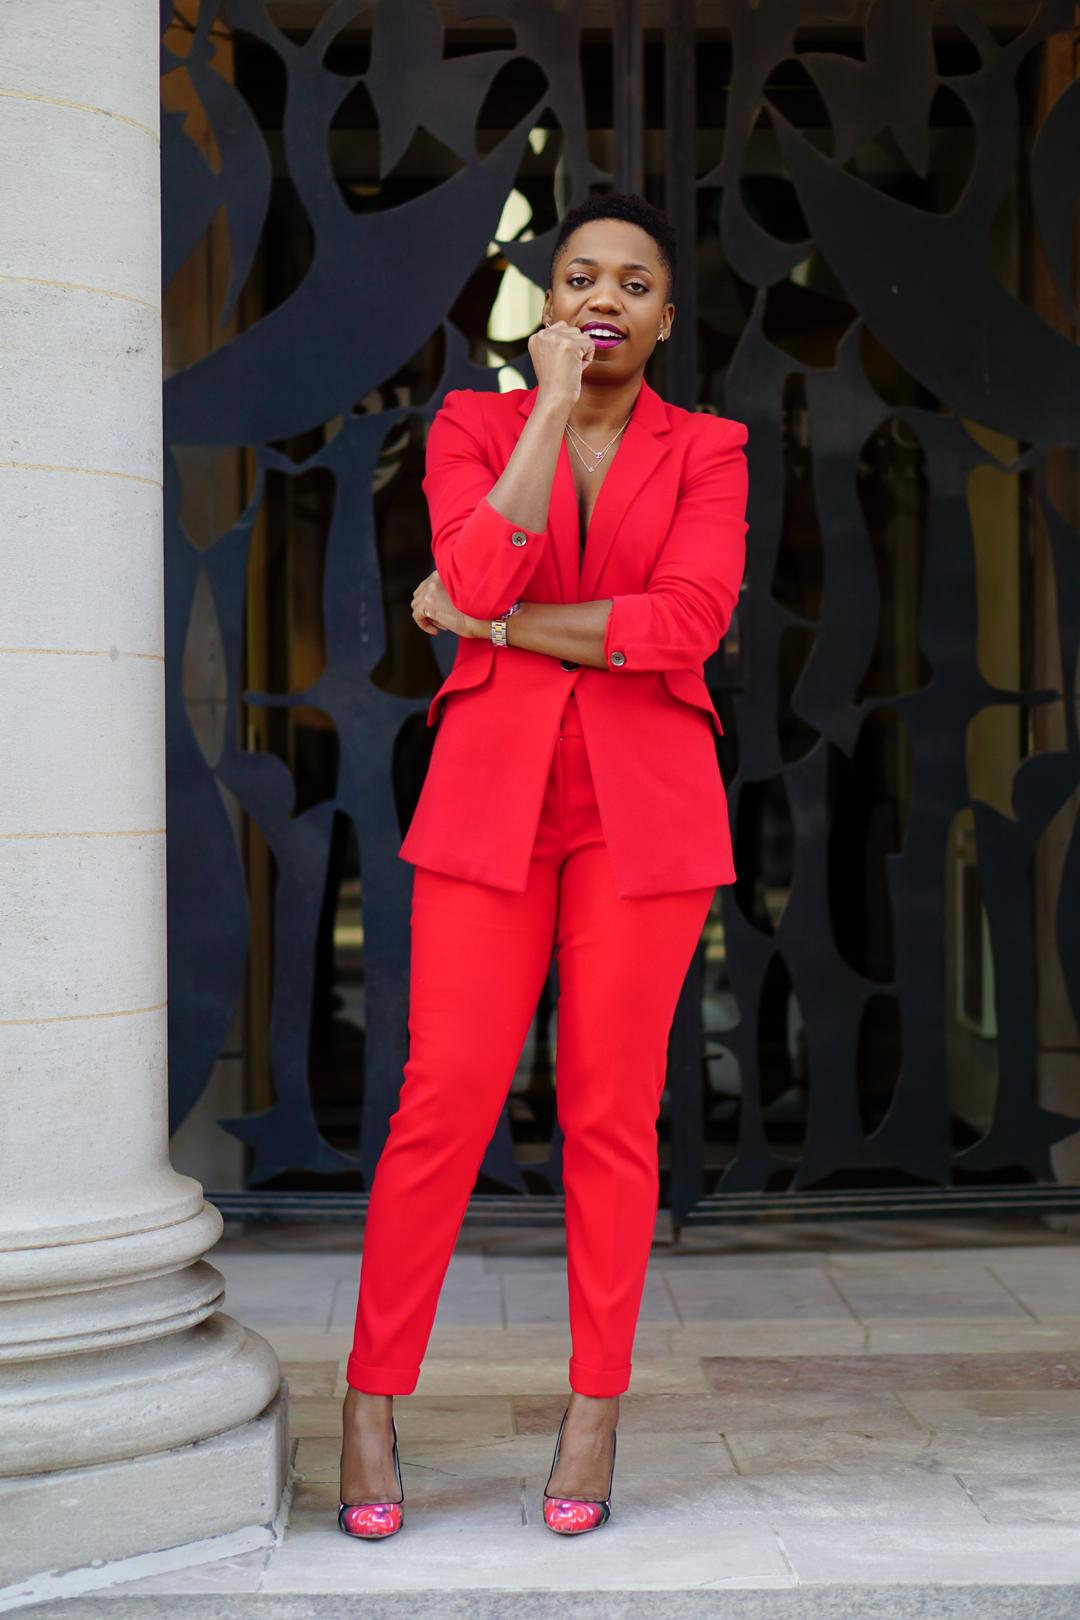 14421a72e8997 How to Make the Power Suit Trend Your Own - Economy of Style